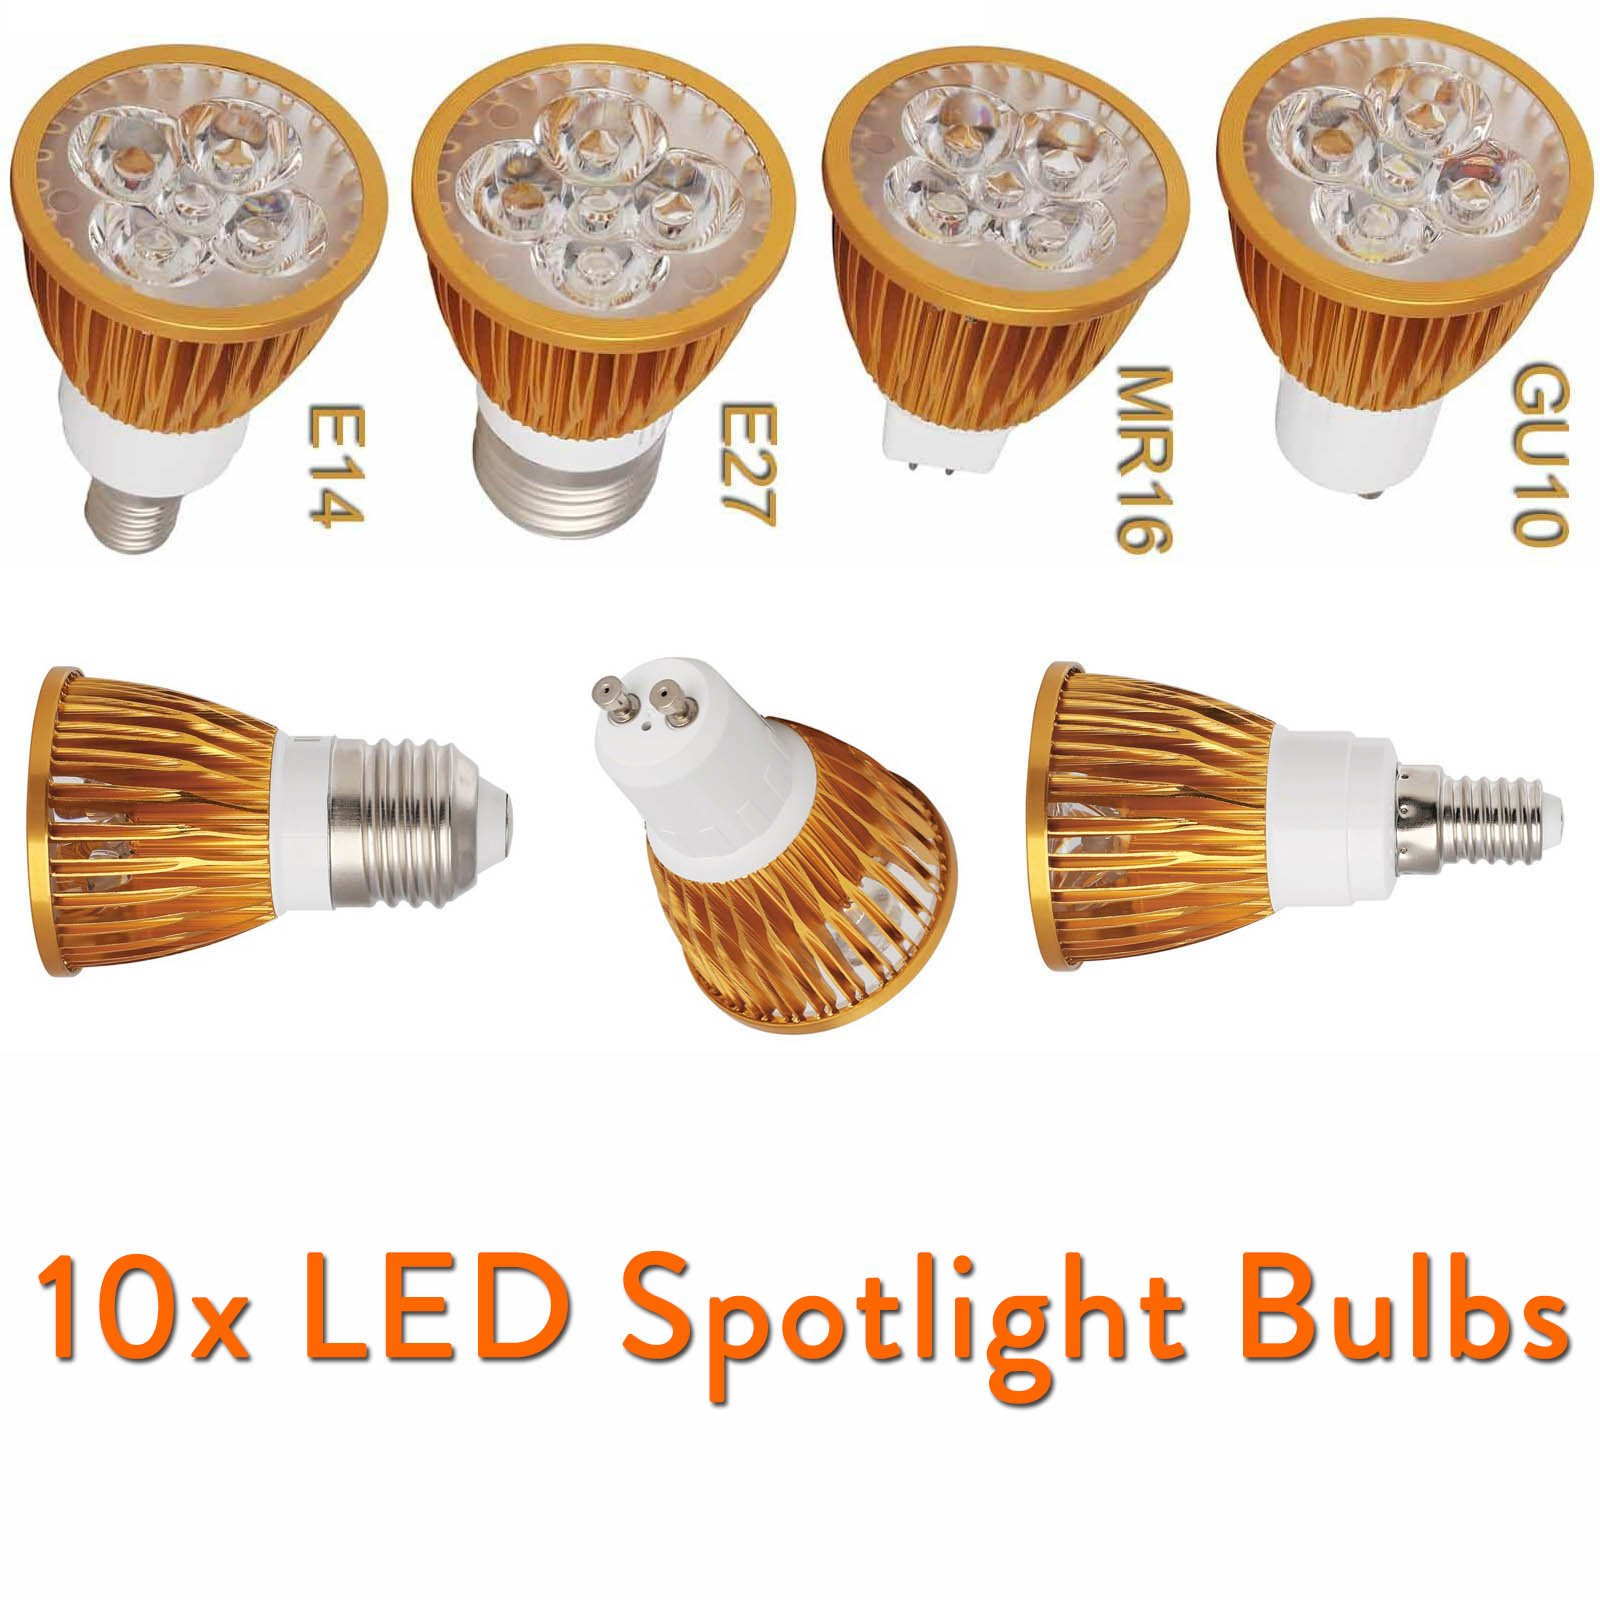 10x Dimmable <font><b>LED</b></font> lamp Spotlight <font><b>Bulb</b></font> MR16 GU10 <font><b>E27</b></font> E14 <font><b>LED</b></font> spot light12V 220V 110V 9W 12W 15W Lamp Warm Cool White Neutral White image